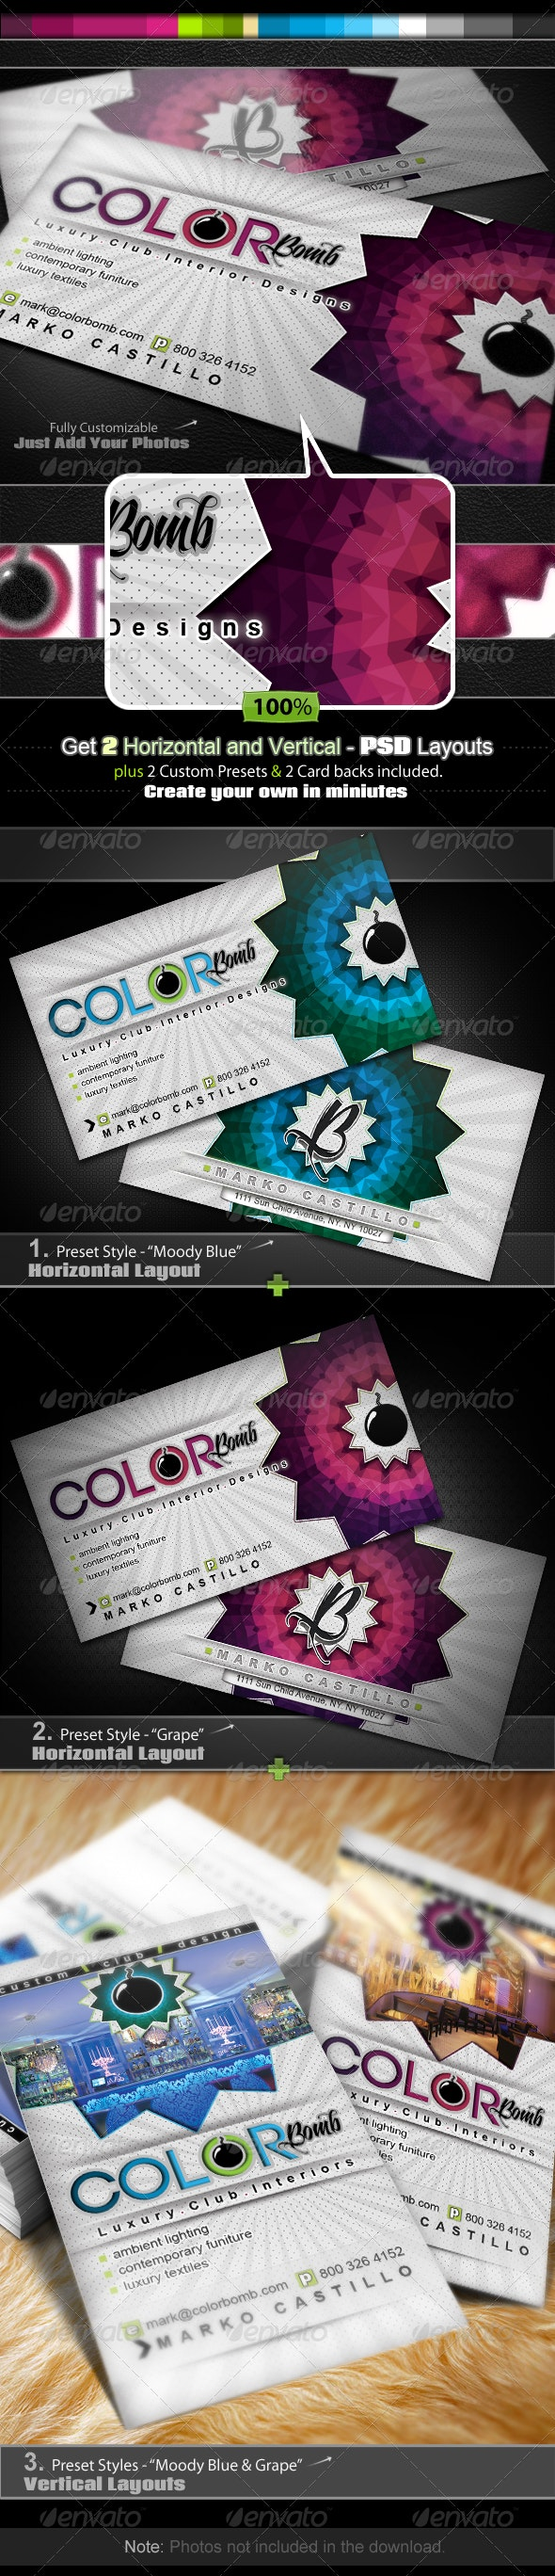 Color Bomb - Business Card Set - Creative Business Cards